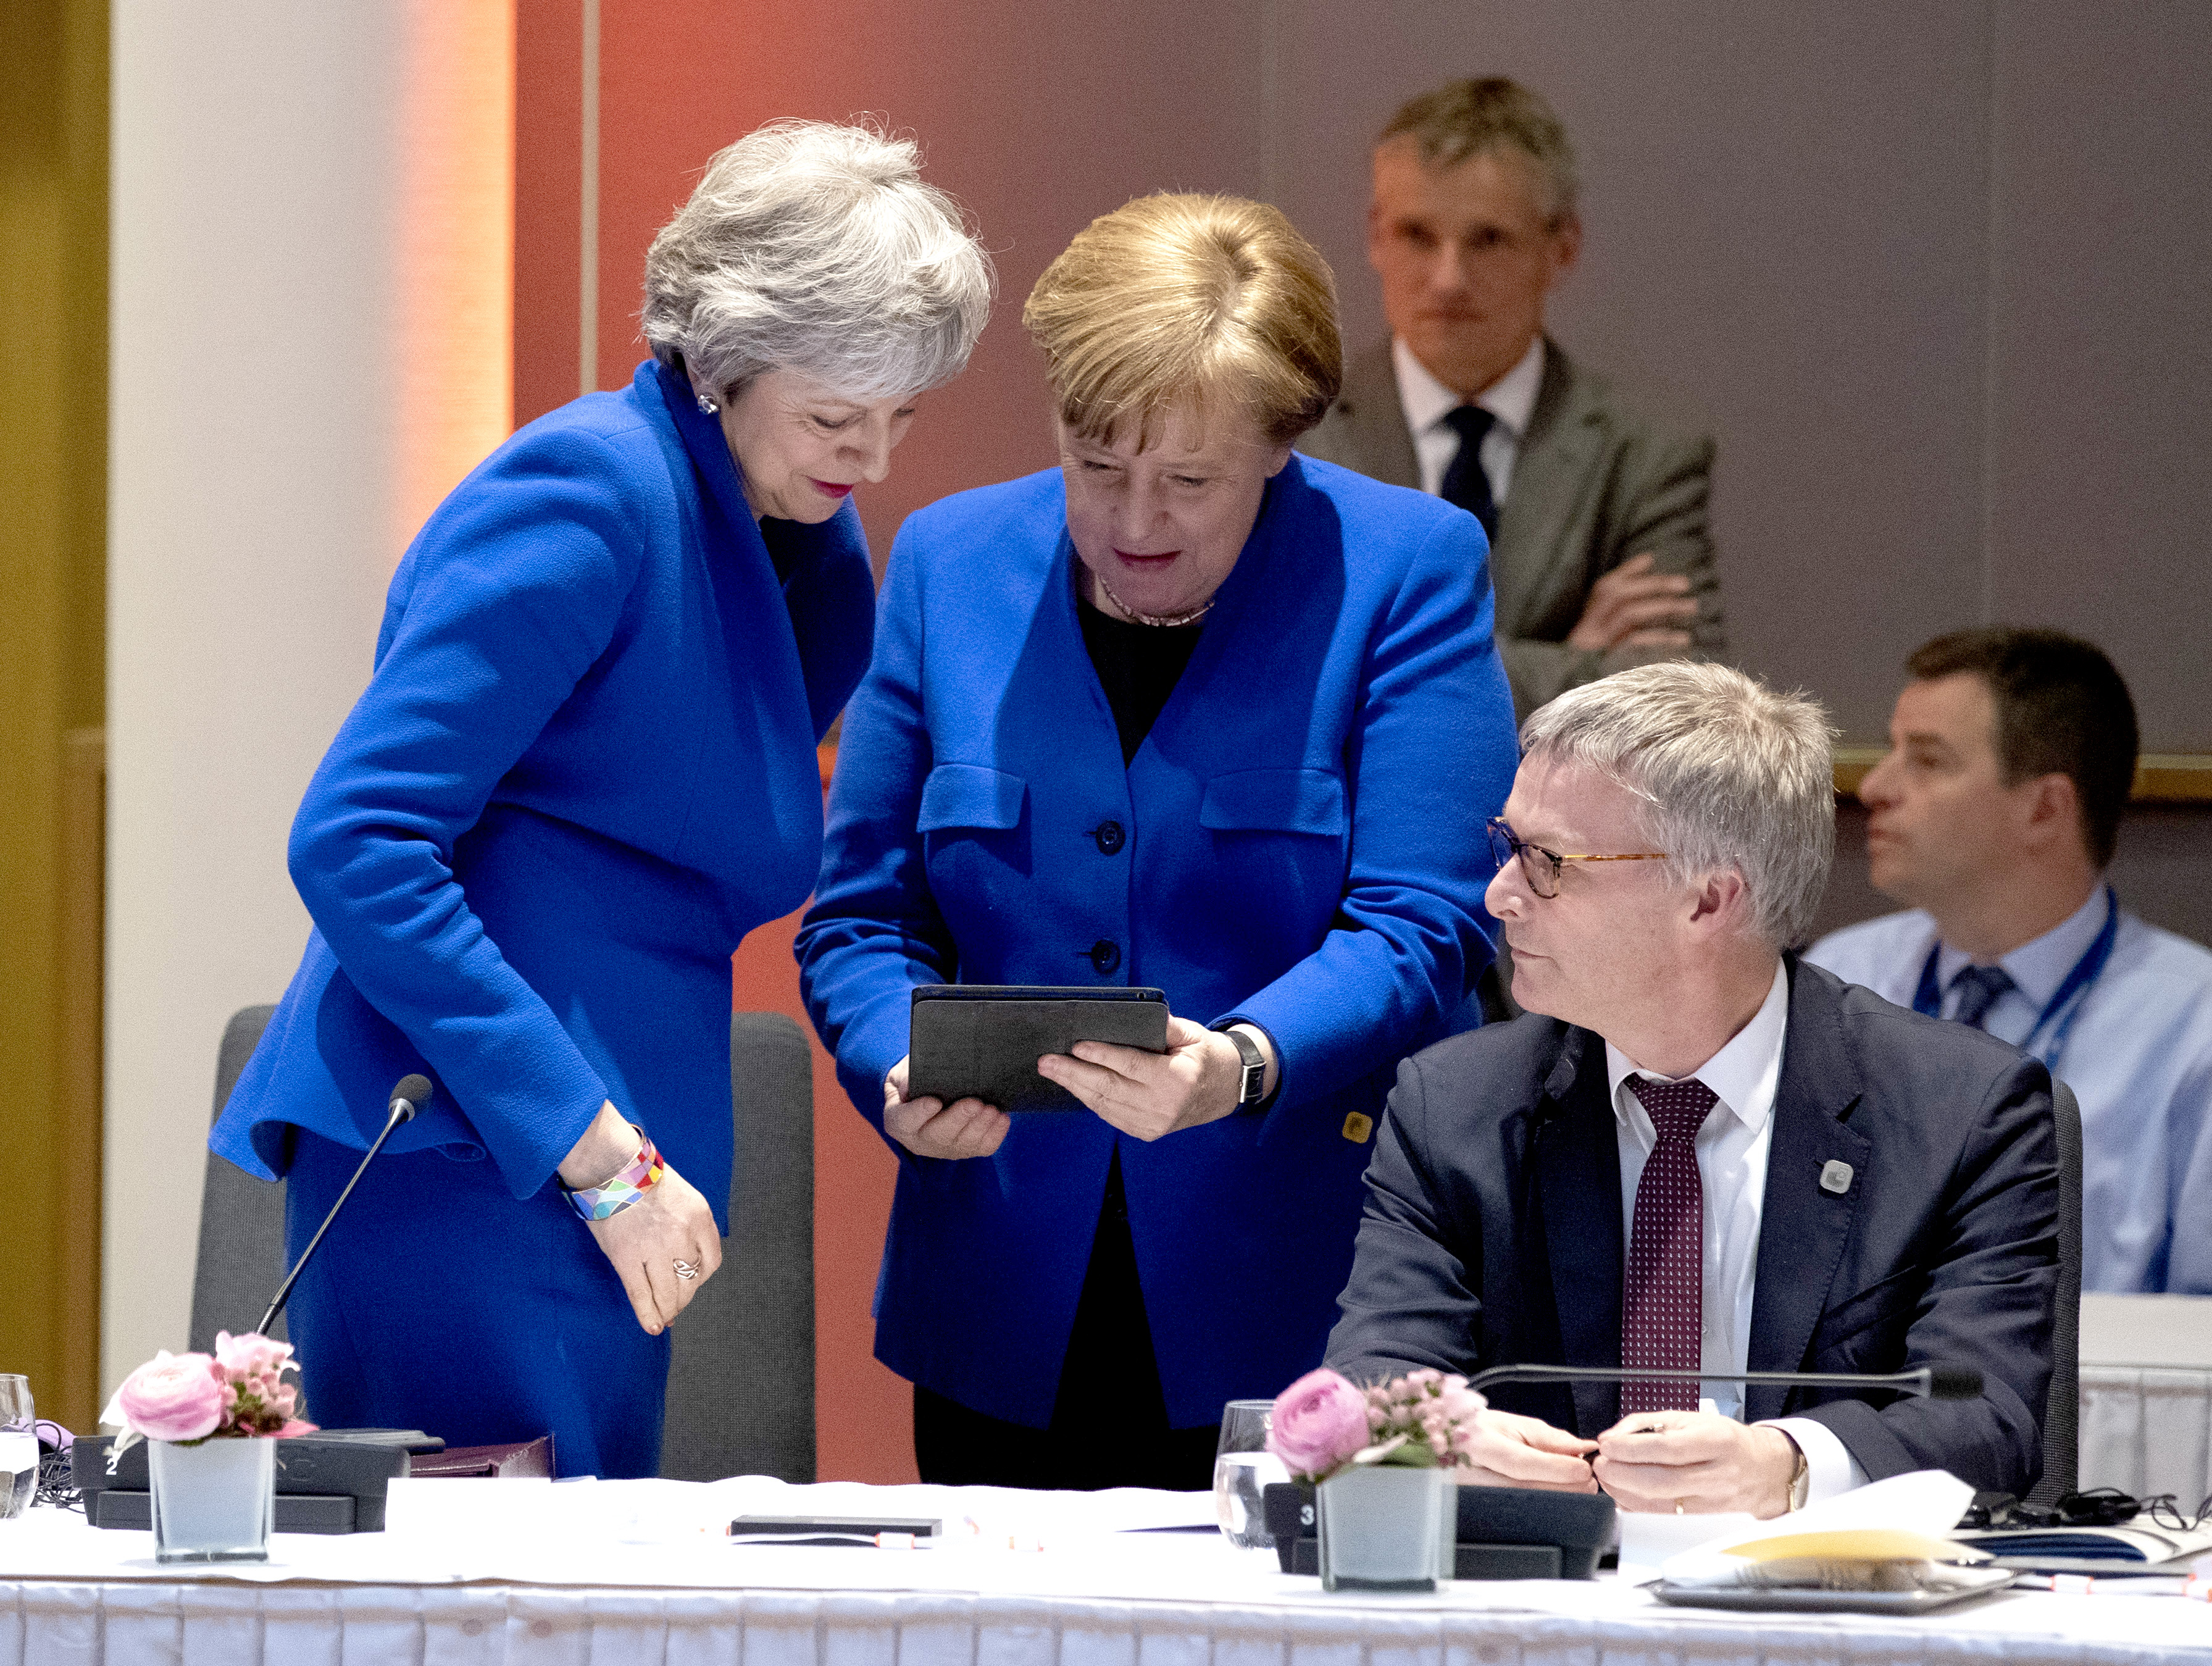 May and Merkel share a laugh over matching outfits